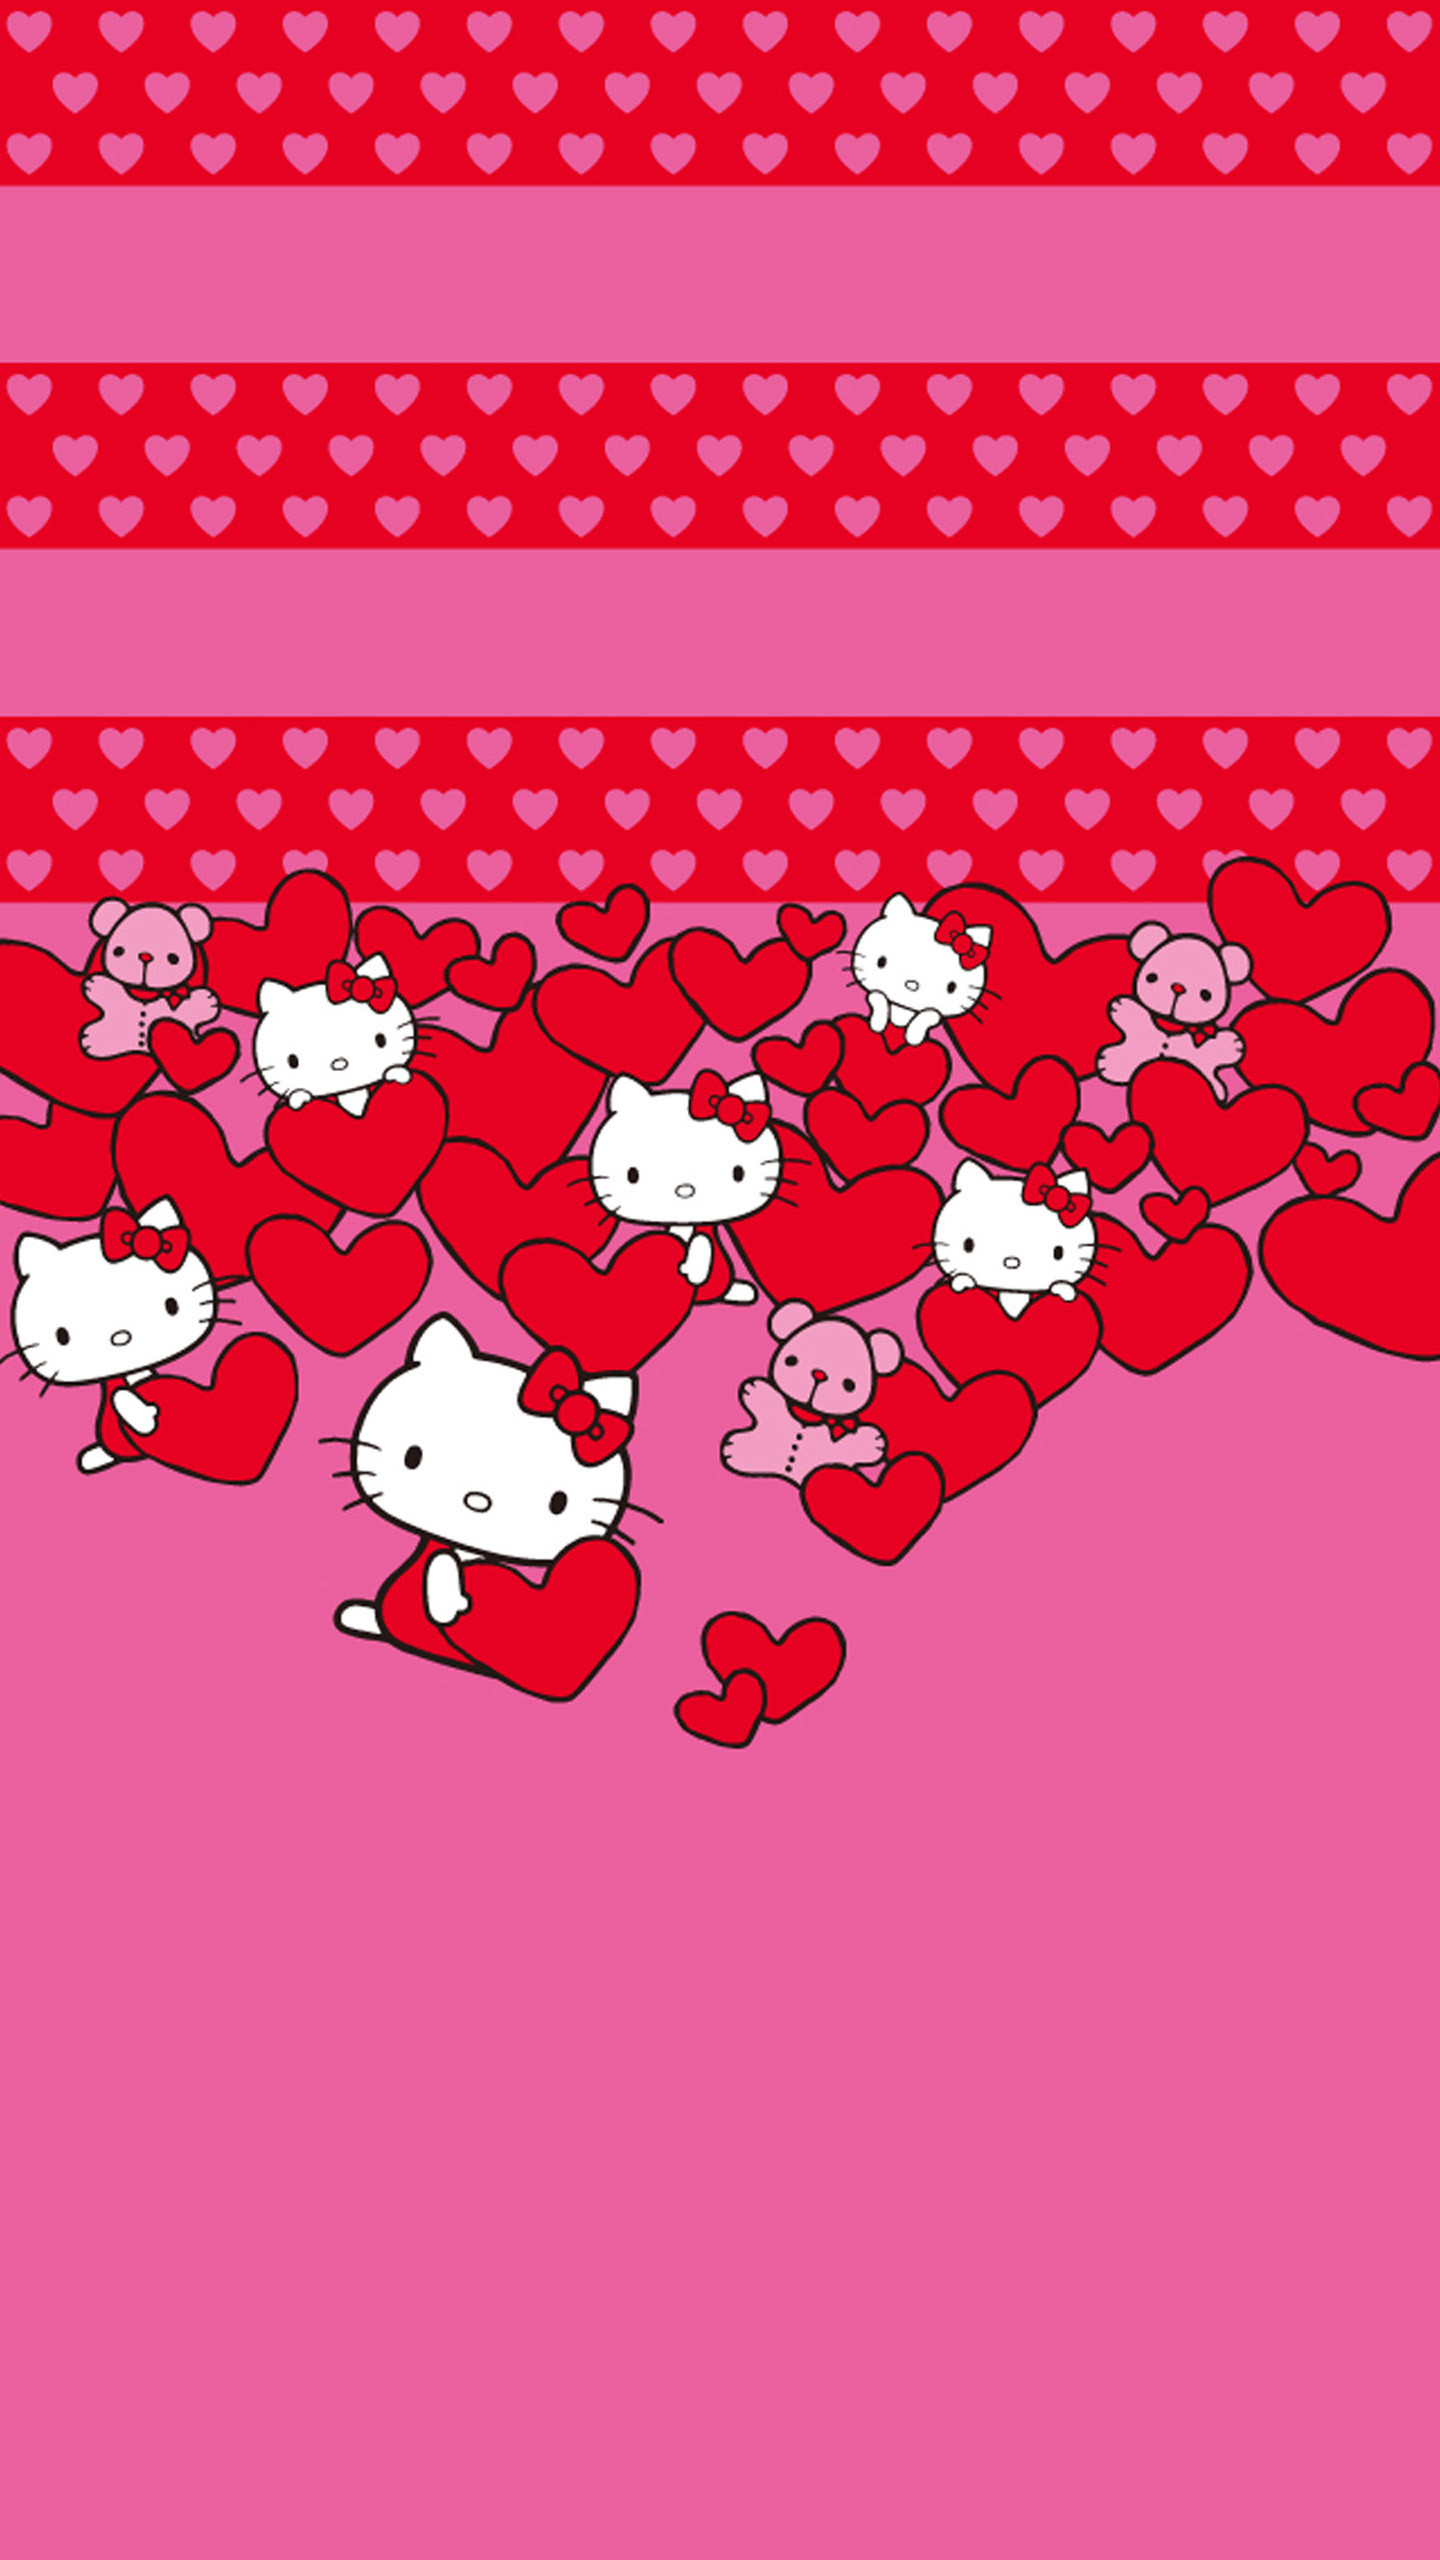 1440x2560 Hello Kitty Hearts LG G3 Wallpapers